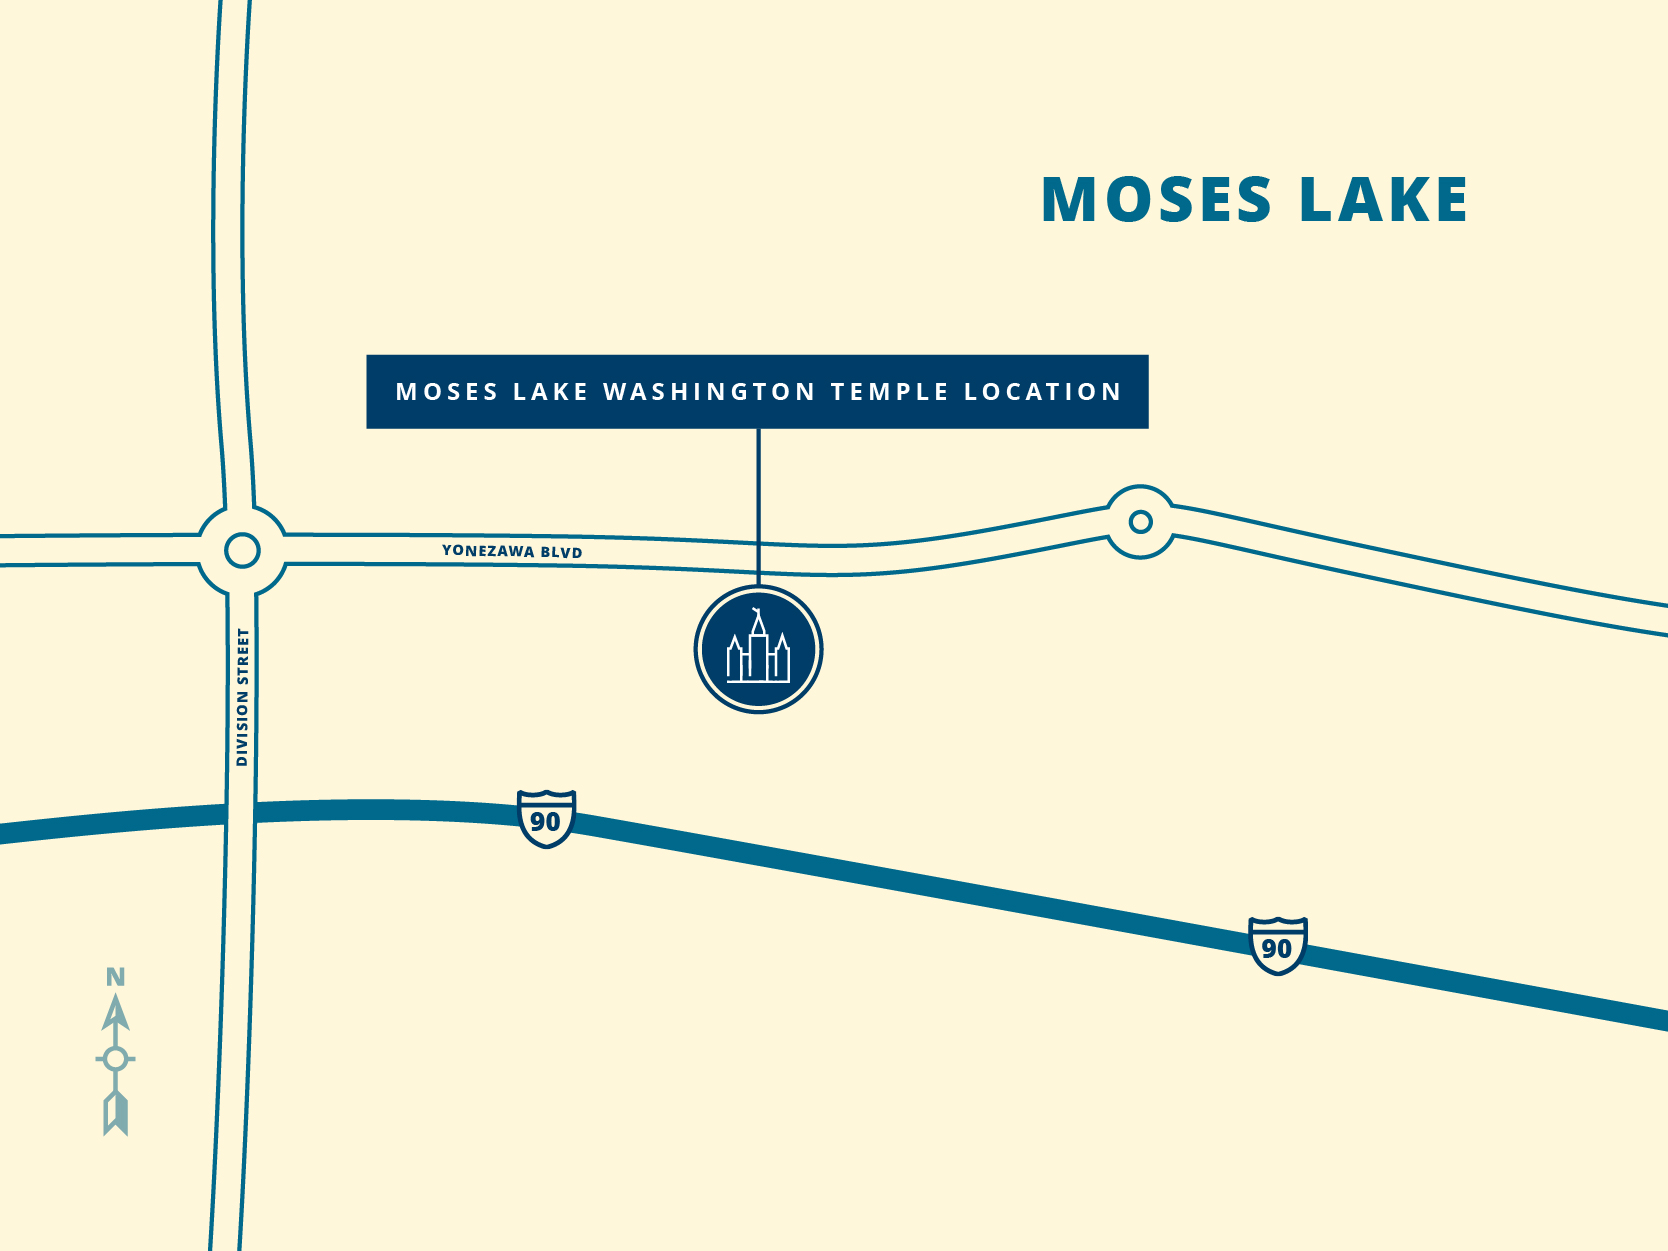 Site map for the Moses Lake Washington Temple